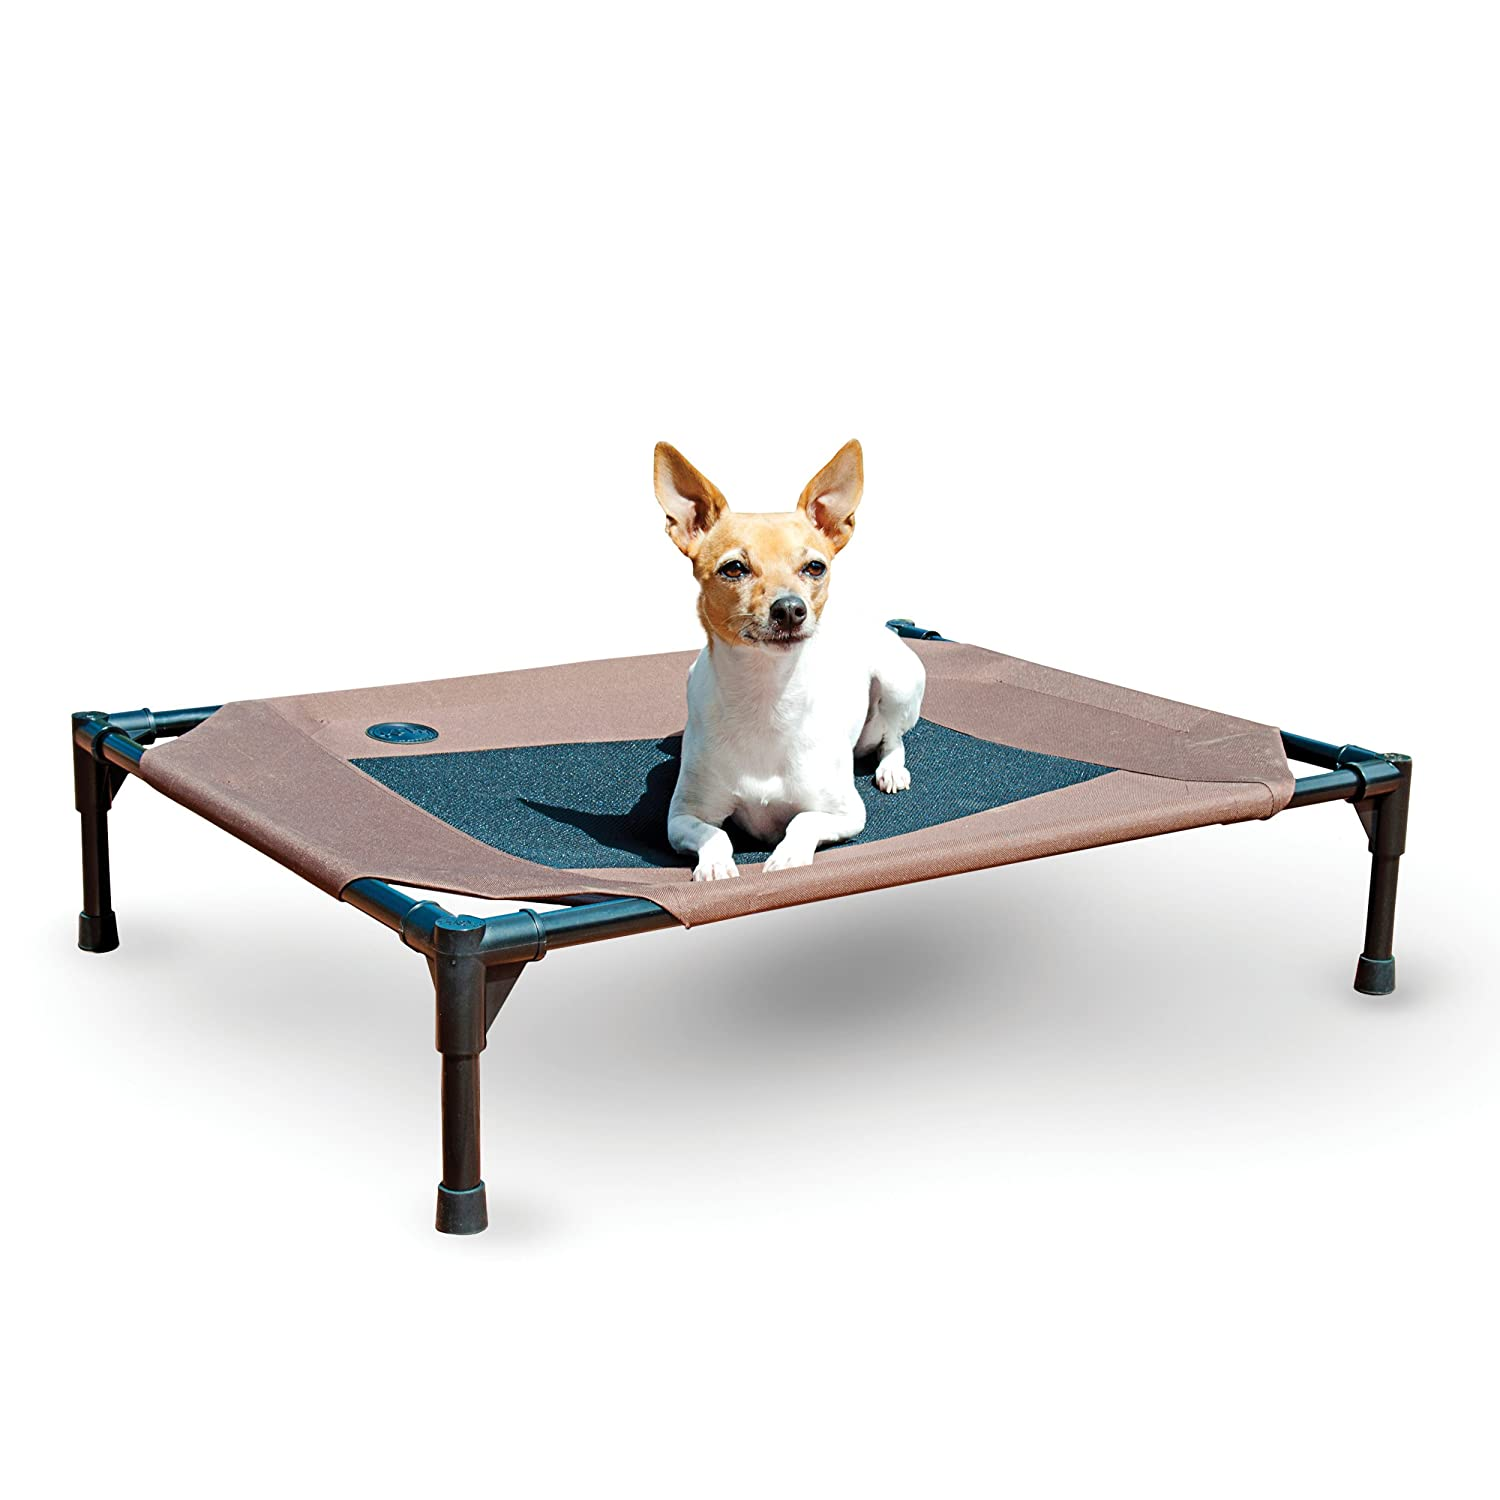 Dog Beds That Sit Off The Floor, Waterproof Fabric Non-Skid Rubber Feet